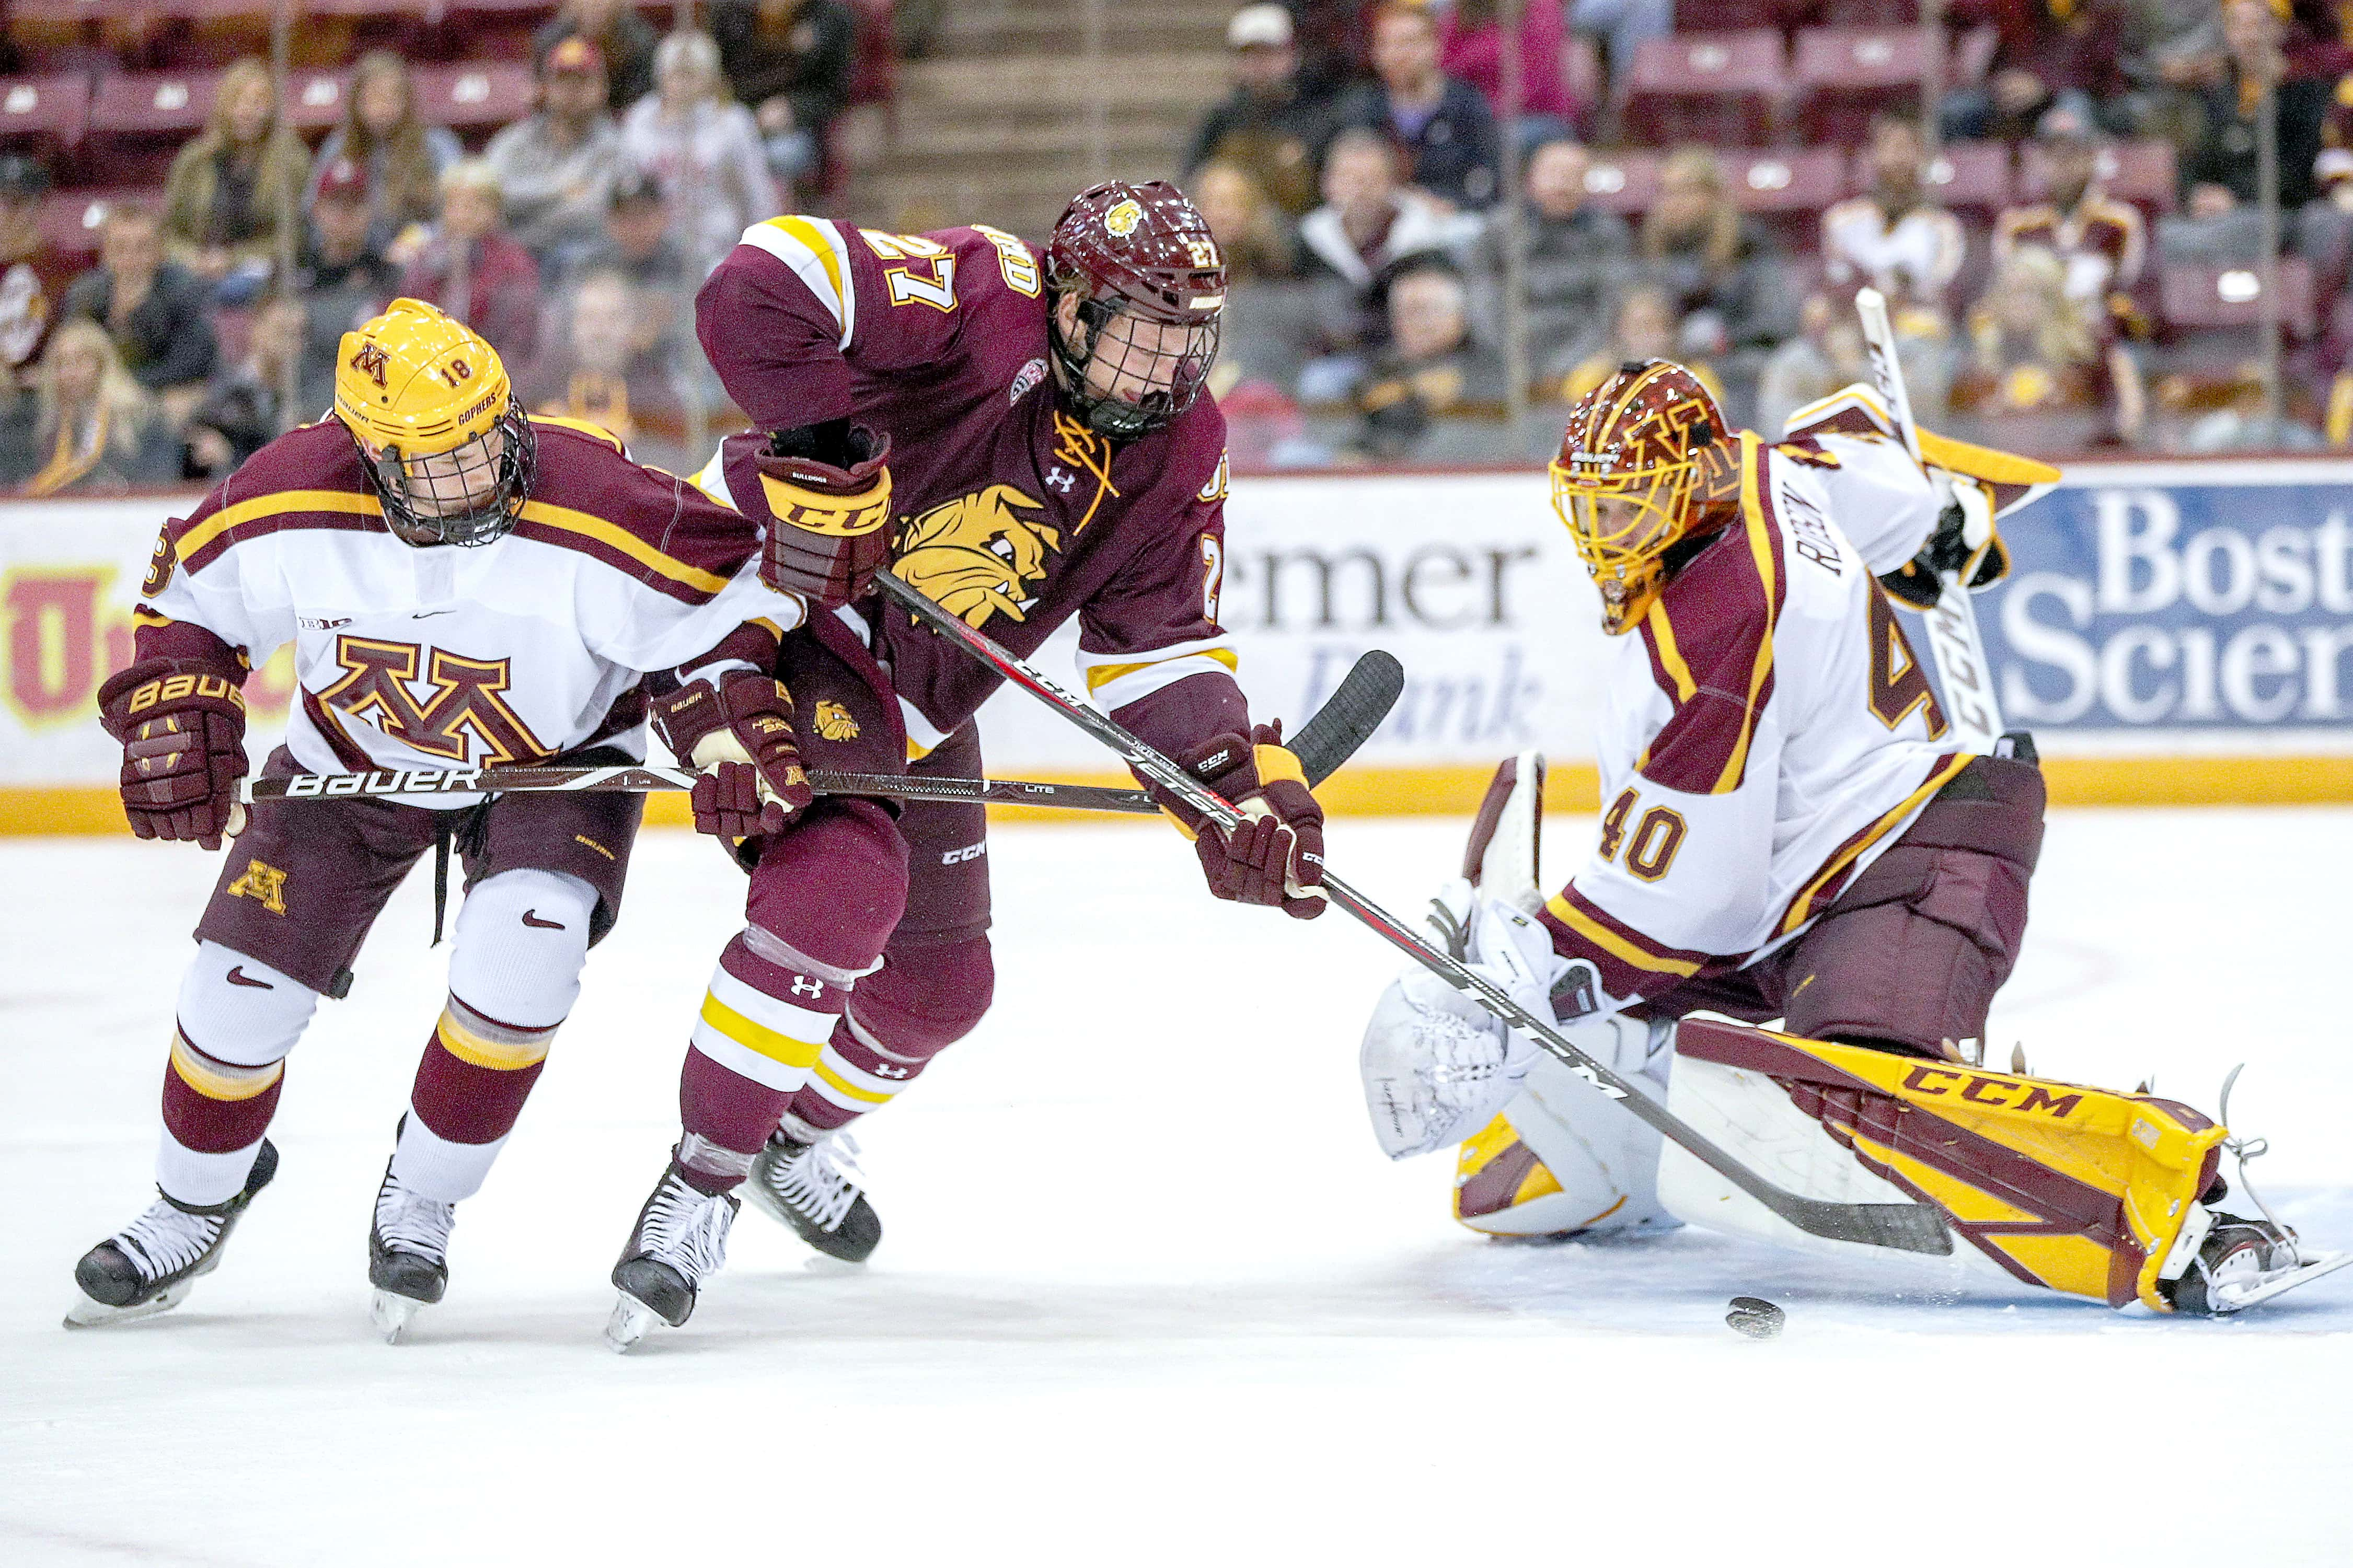 online store e3b9e 5f208 Gophers hockey notebook: 3 nominated for the Hobey Baker ...